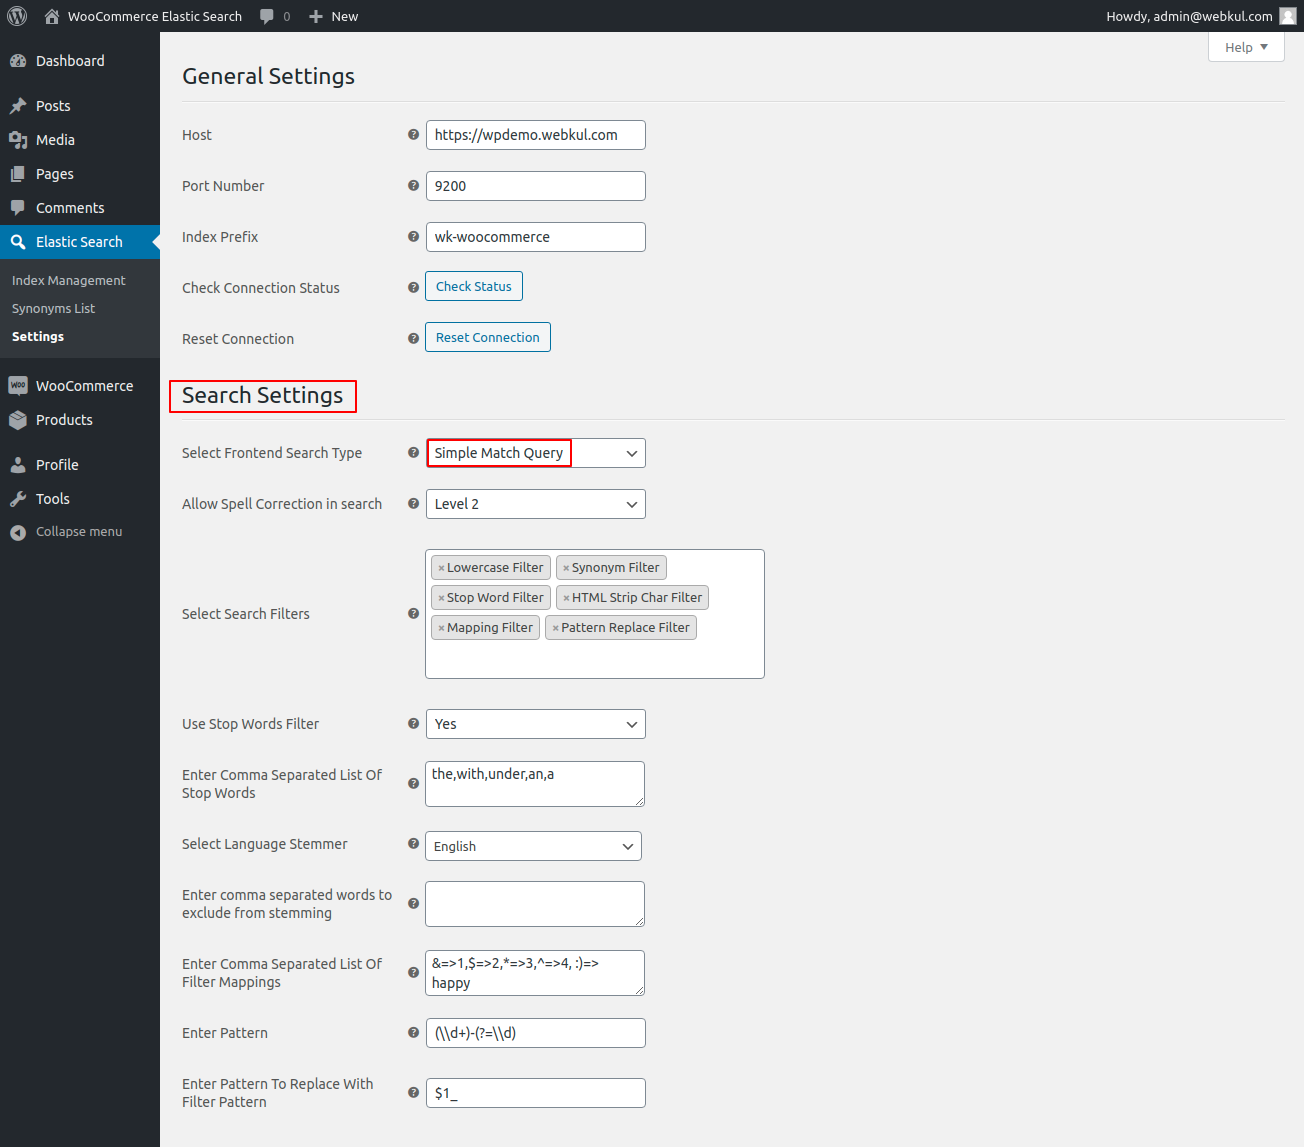 webkul-woocommerce-elasticsearch-search-setting-simple-match-query-1